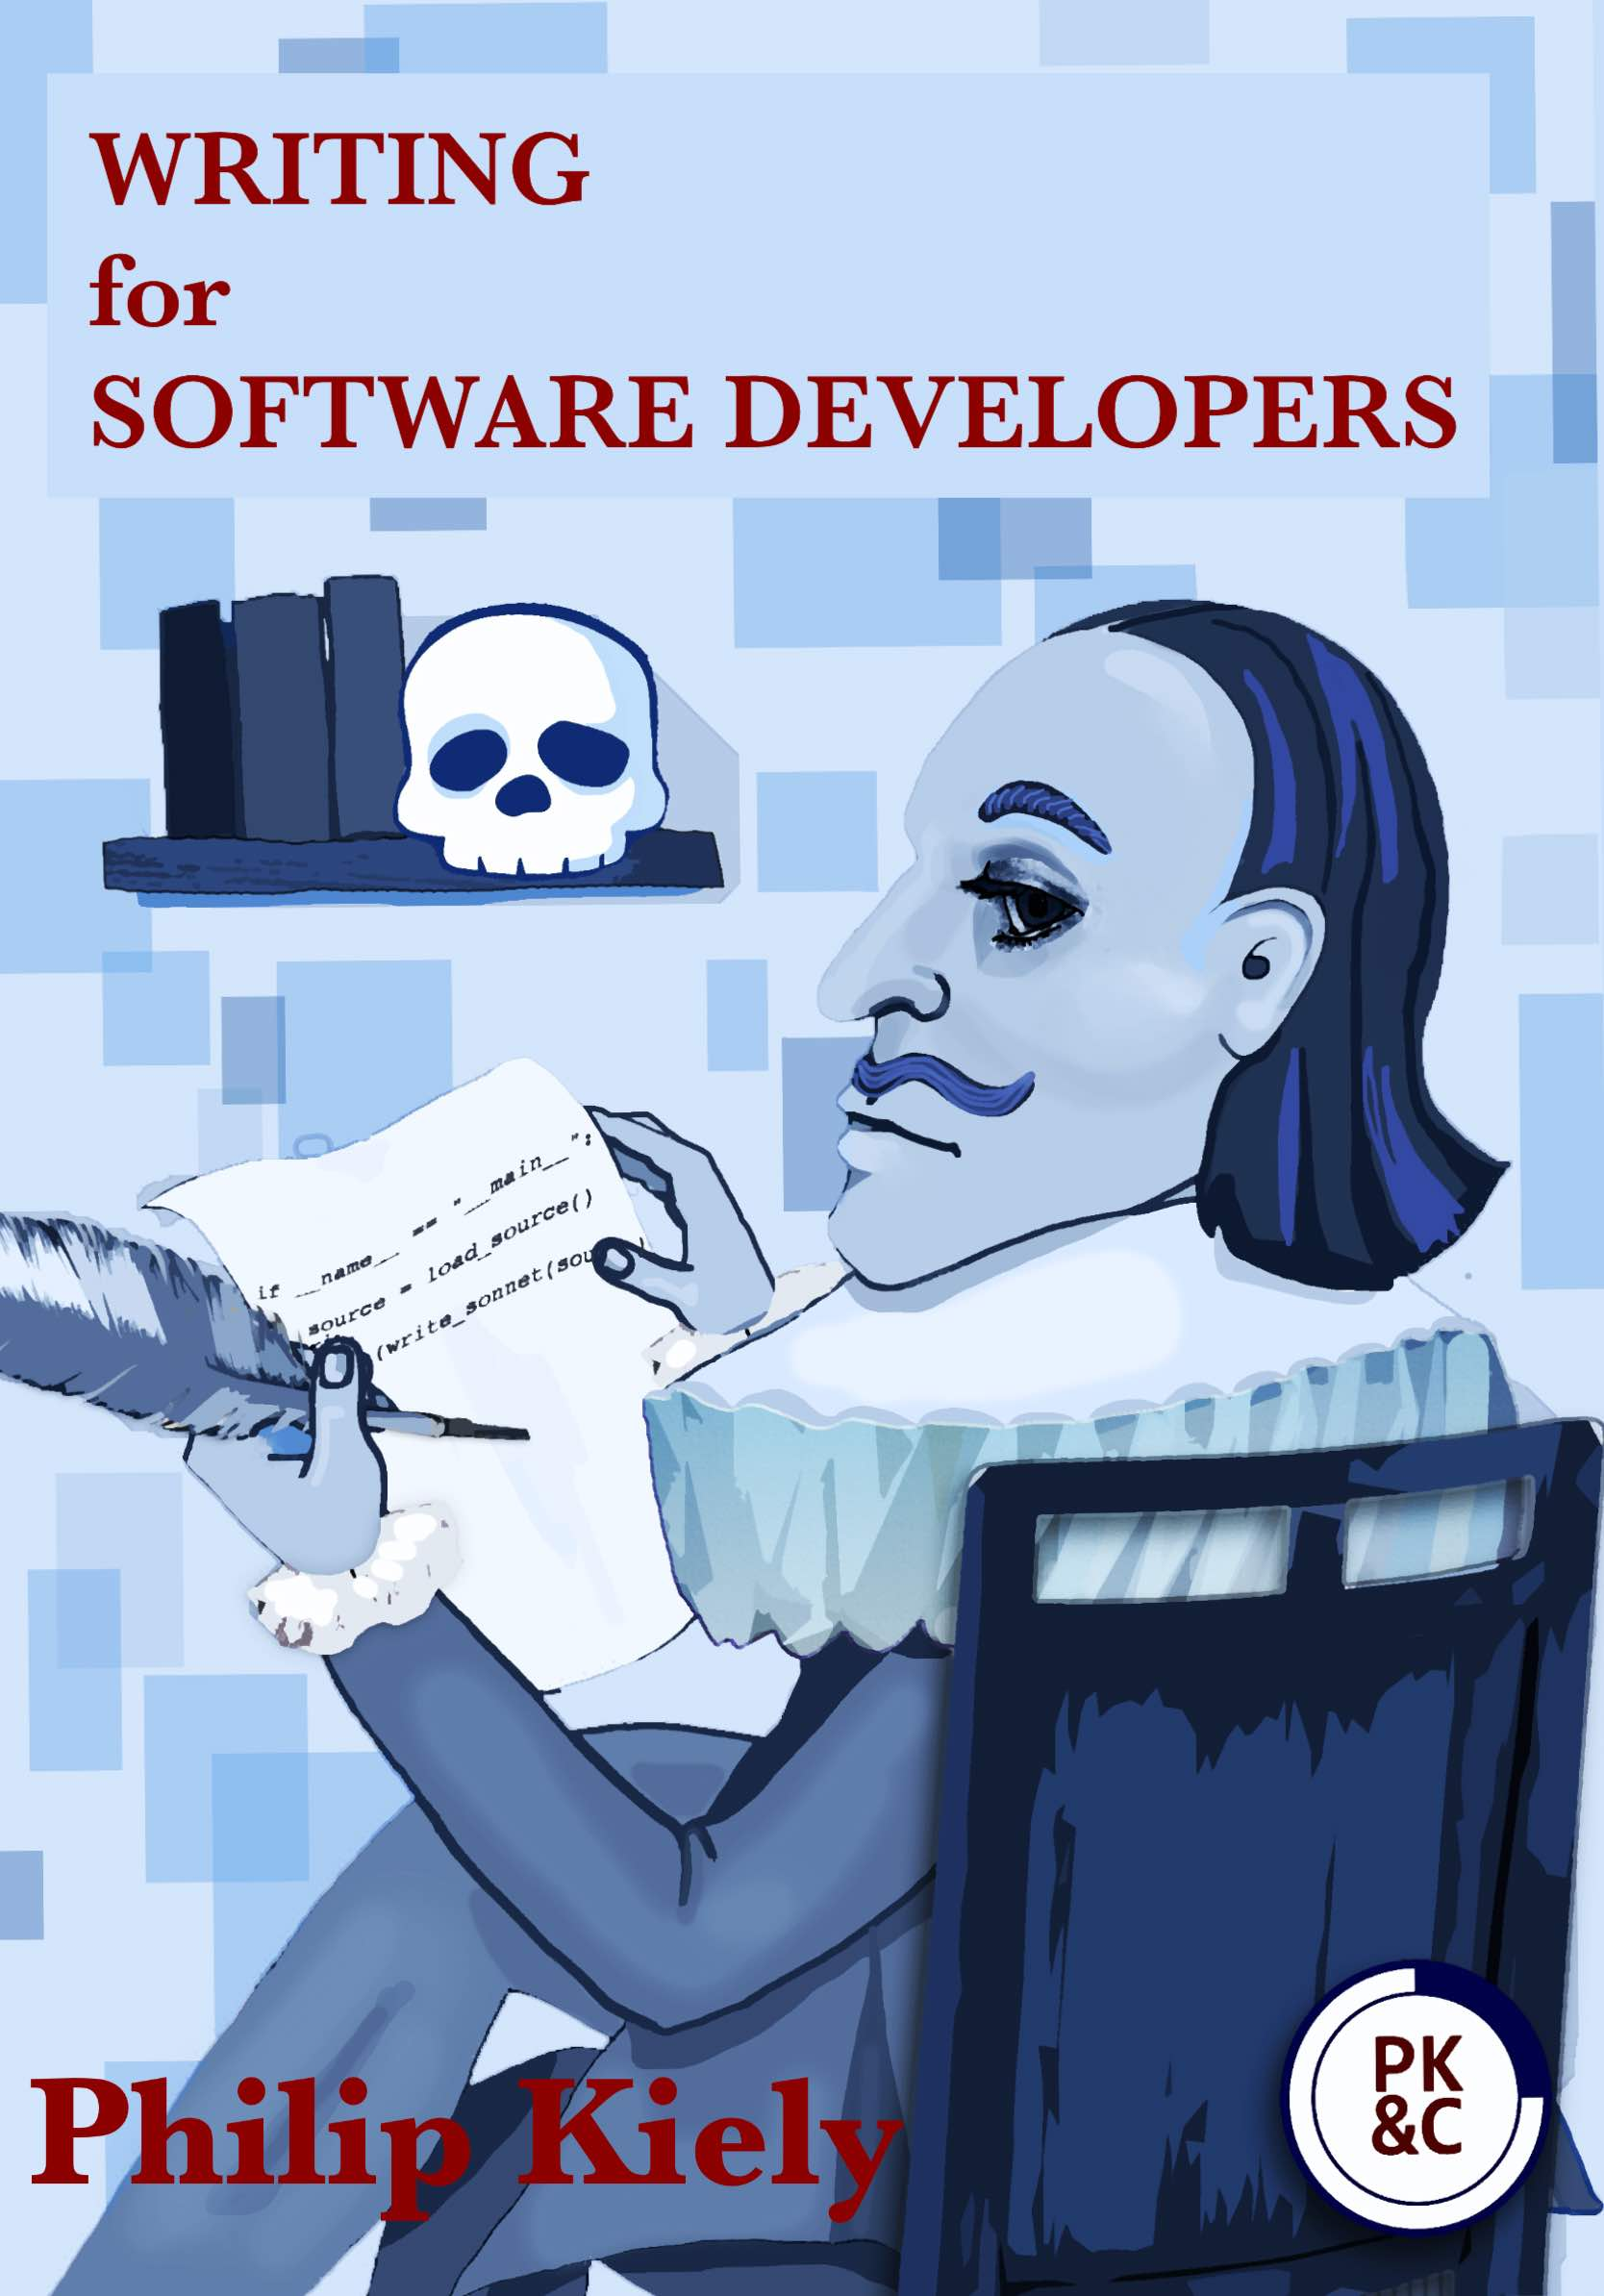 Writing for Software Developers